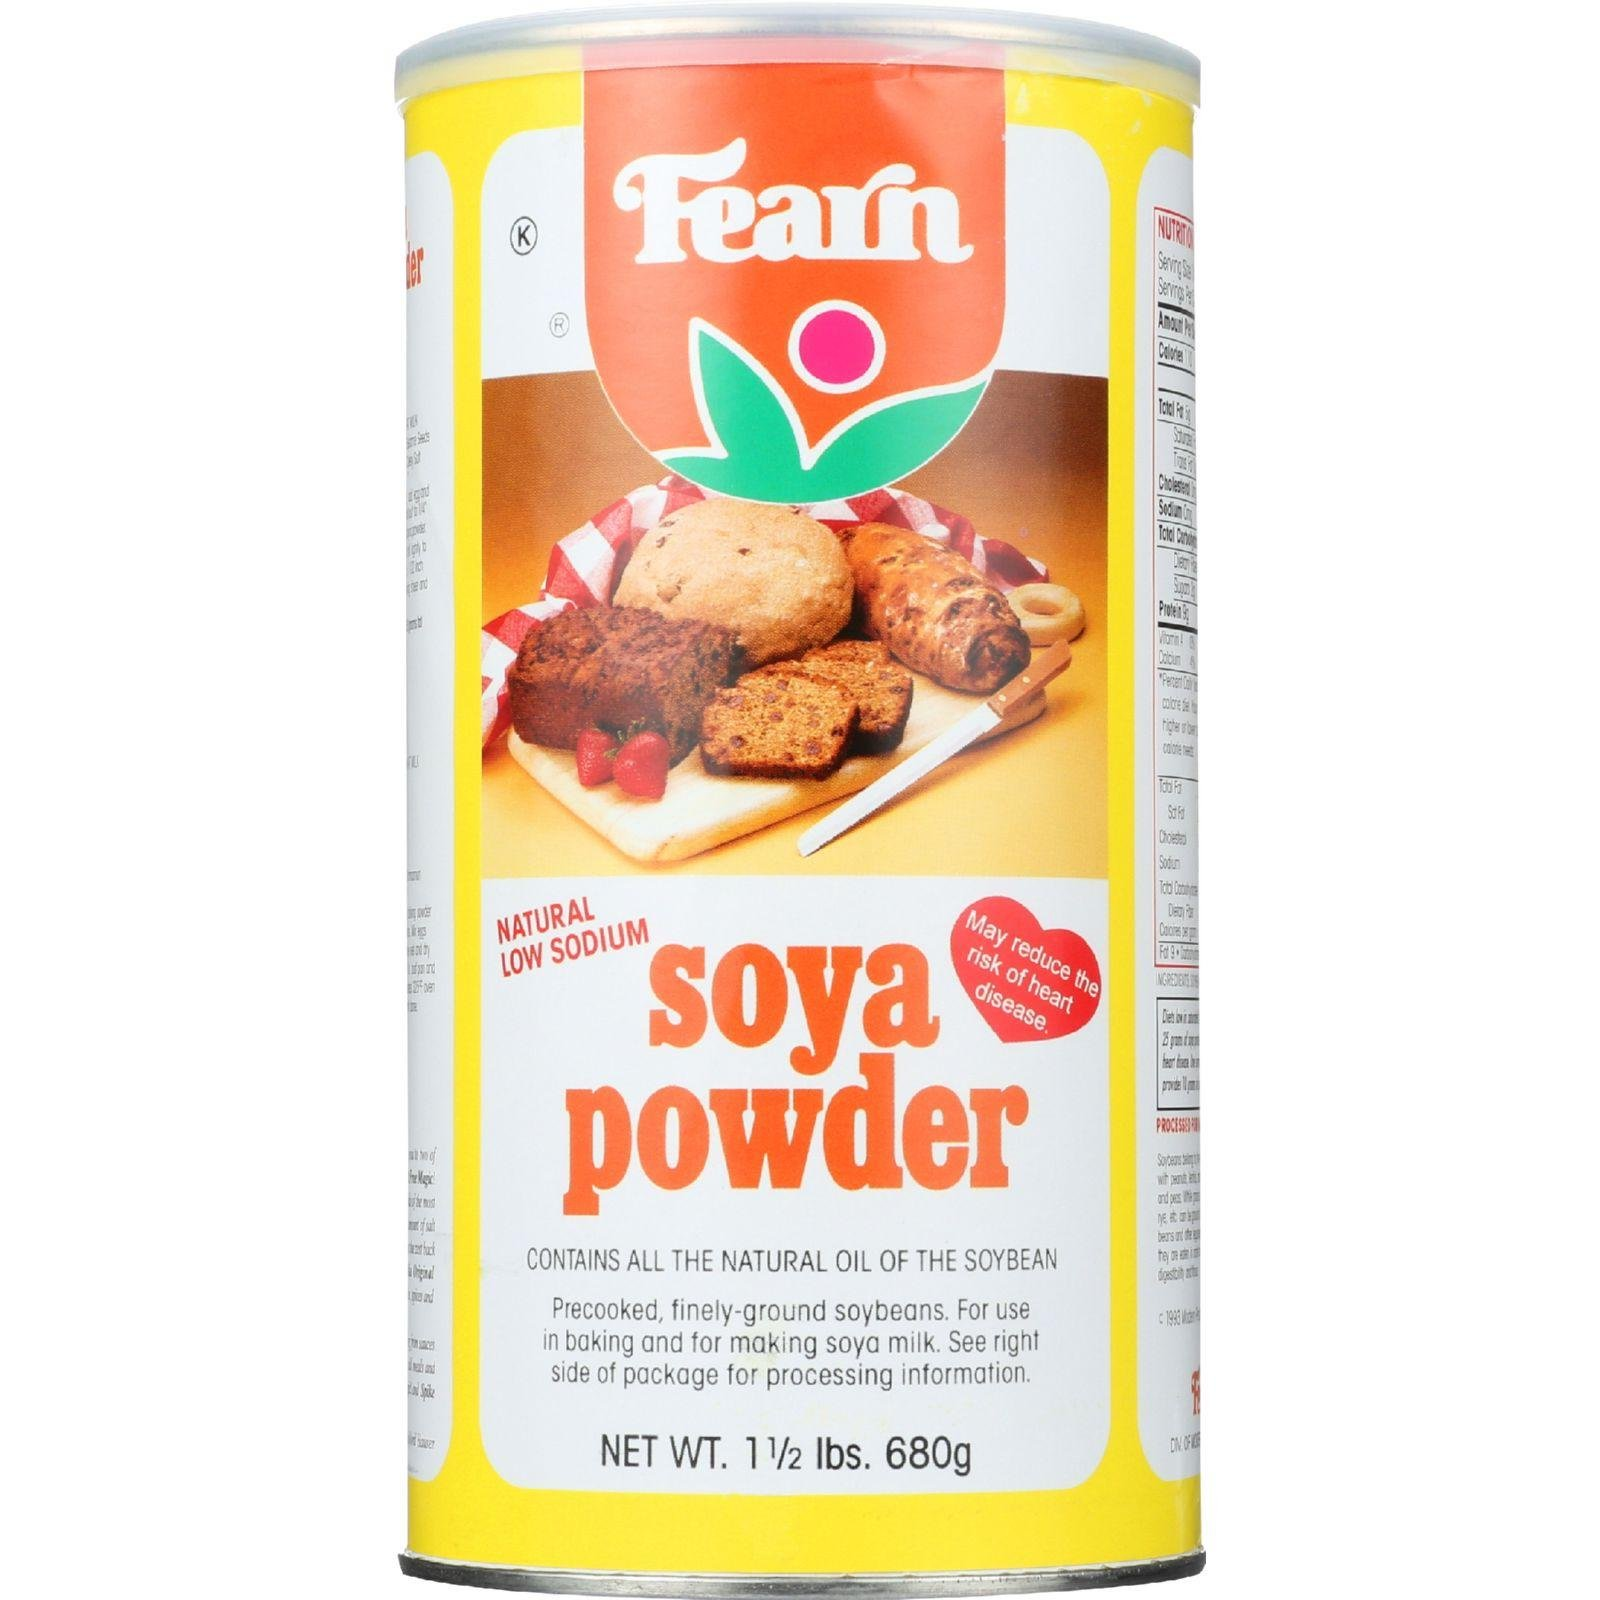 Fearns Soya Food Natural Soya Powder - 1.5 lb - case of 12 by Fearns Soya Food